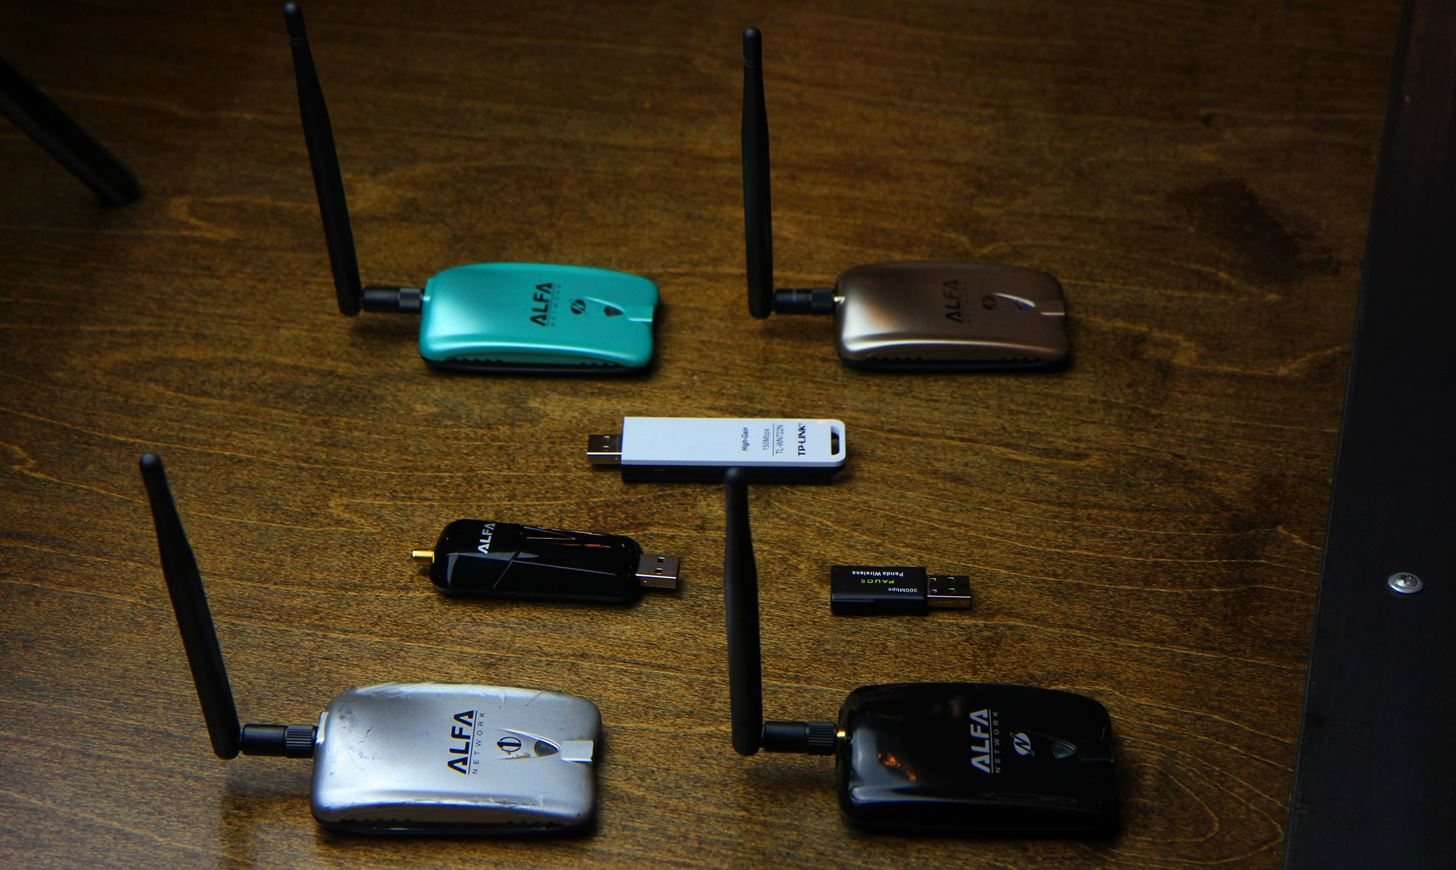 Buy the Best Wireless Network Adapter for Wi-Fi Hacking in